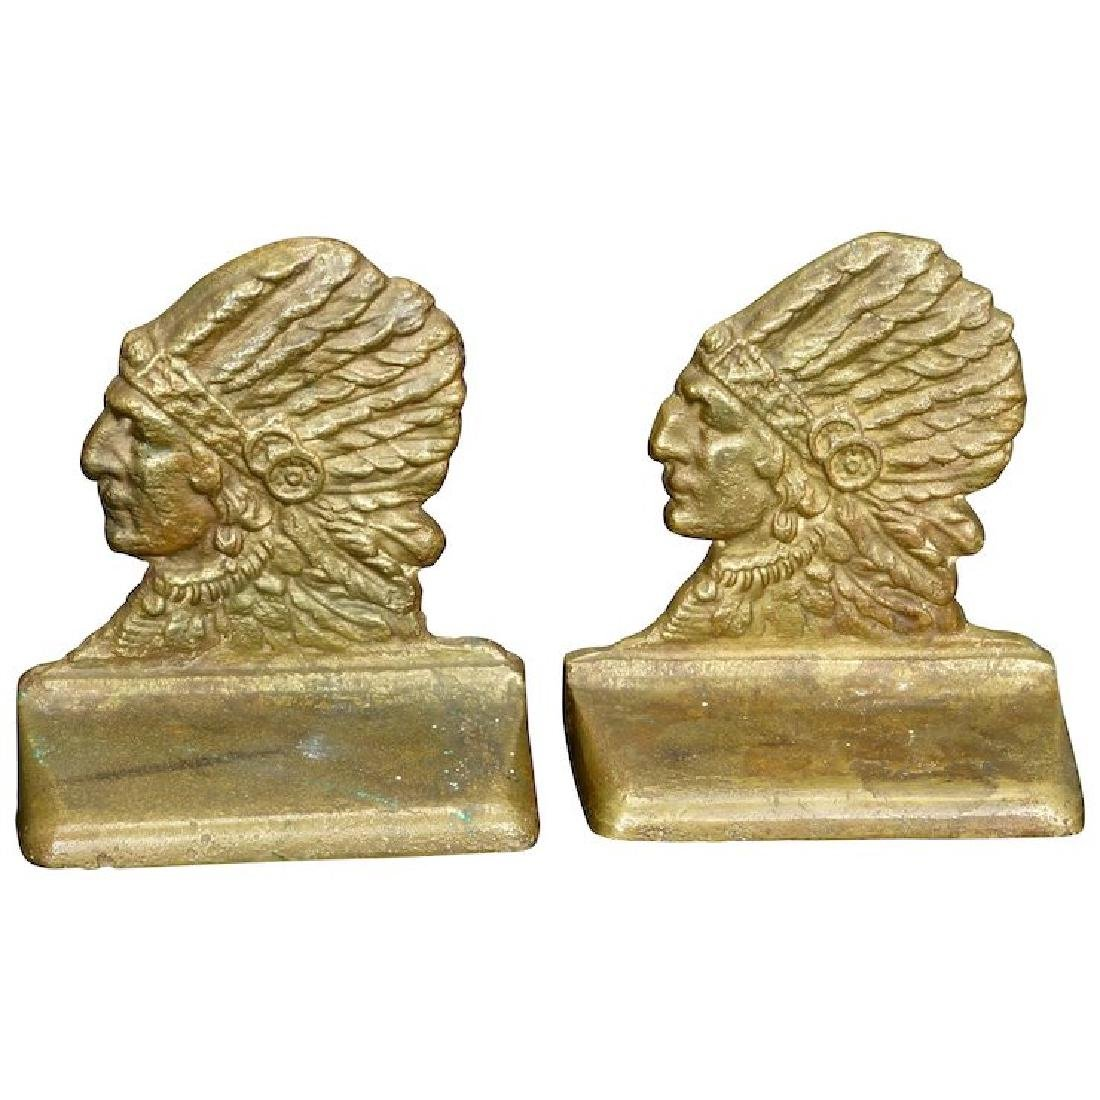 Rare matching pair of Indian Chief profile bronze